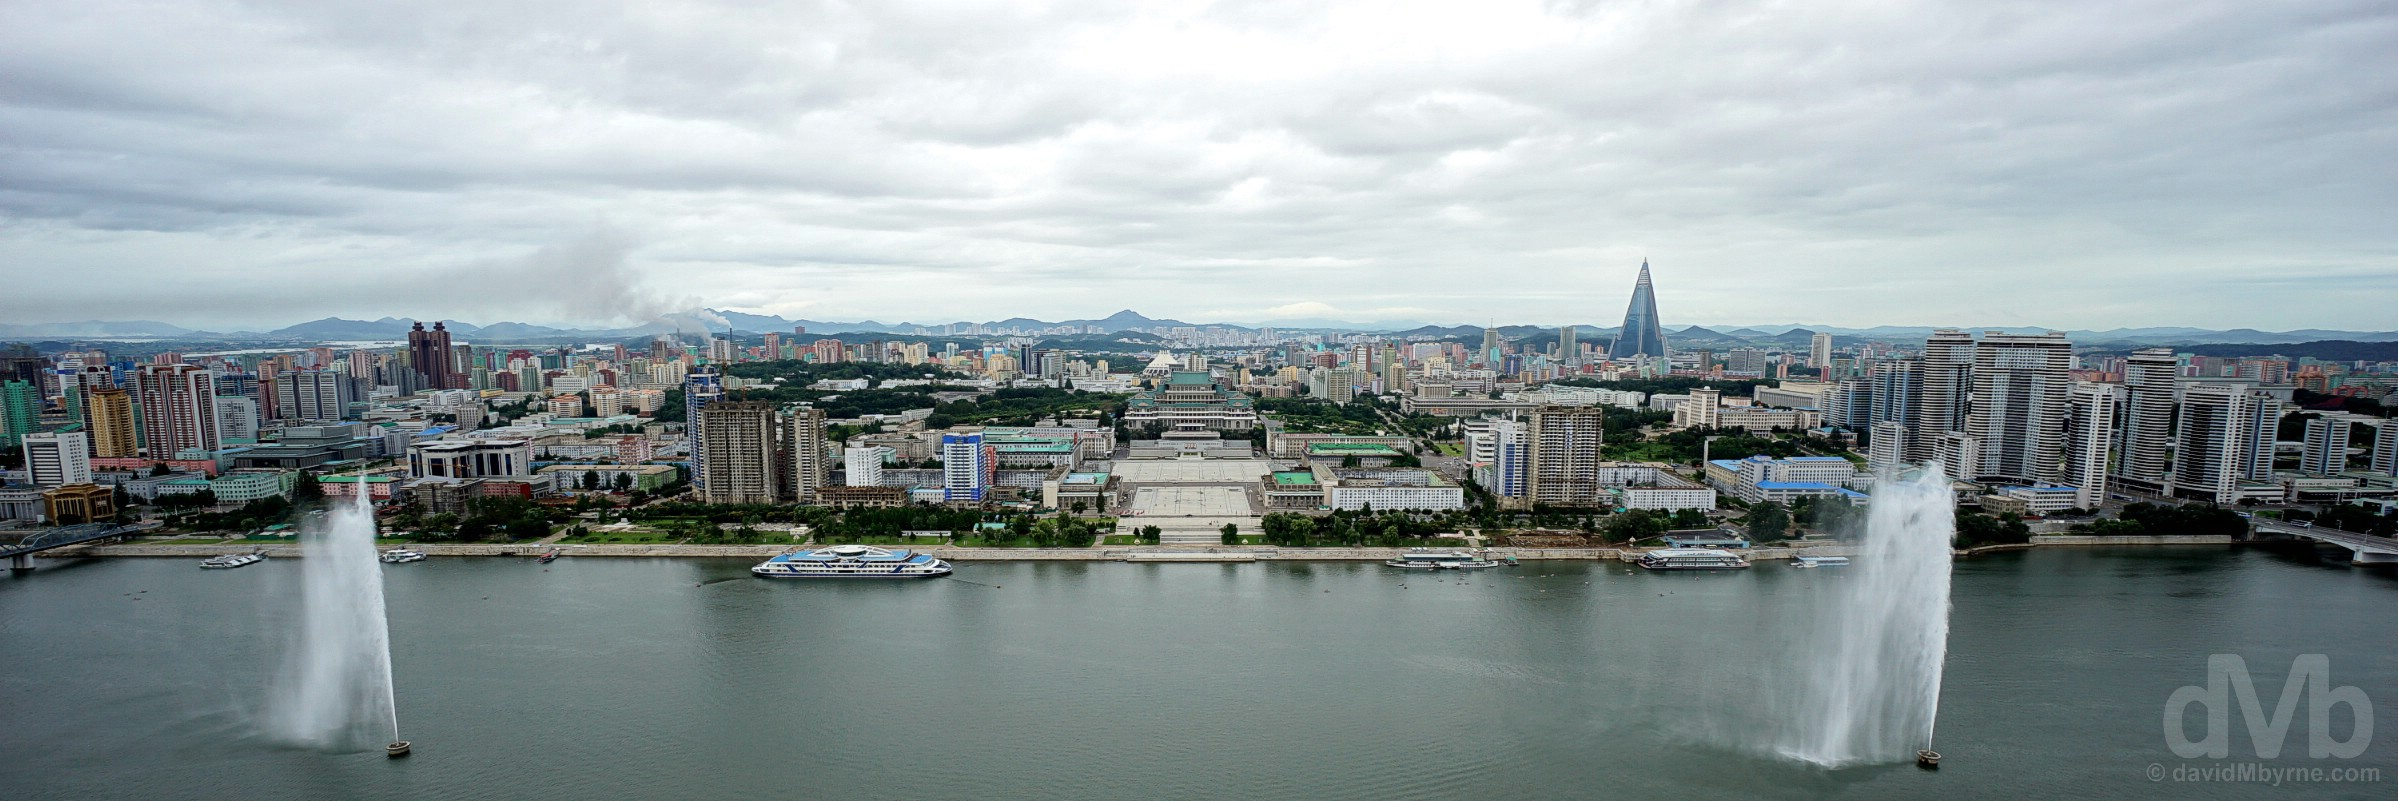 A panorama looking across the Taedong River towards Kim Il-sung Square & western Pyongyang as seen from the top of the Juche Tower, Pyongyang, North Korea. August 15, 2017.